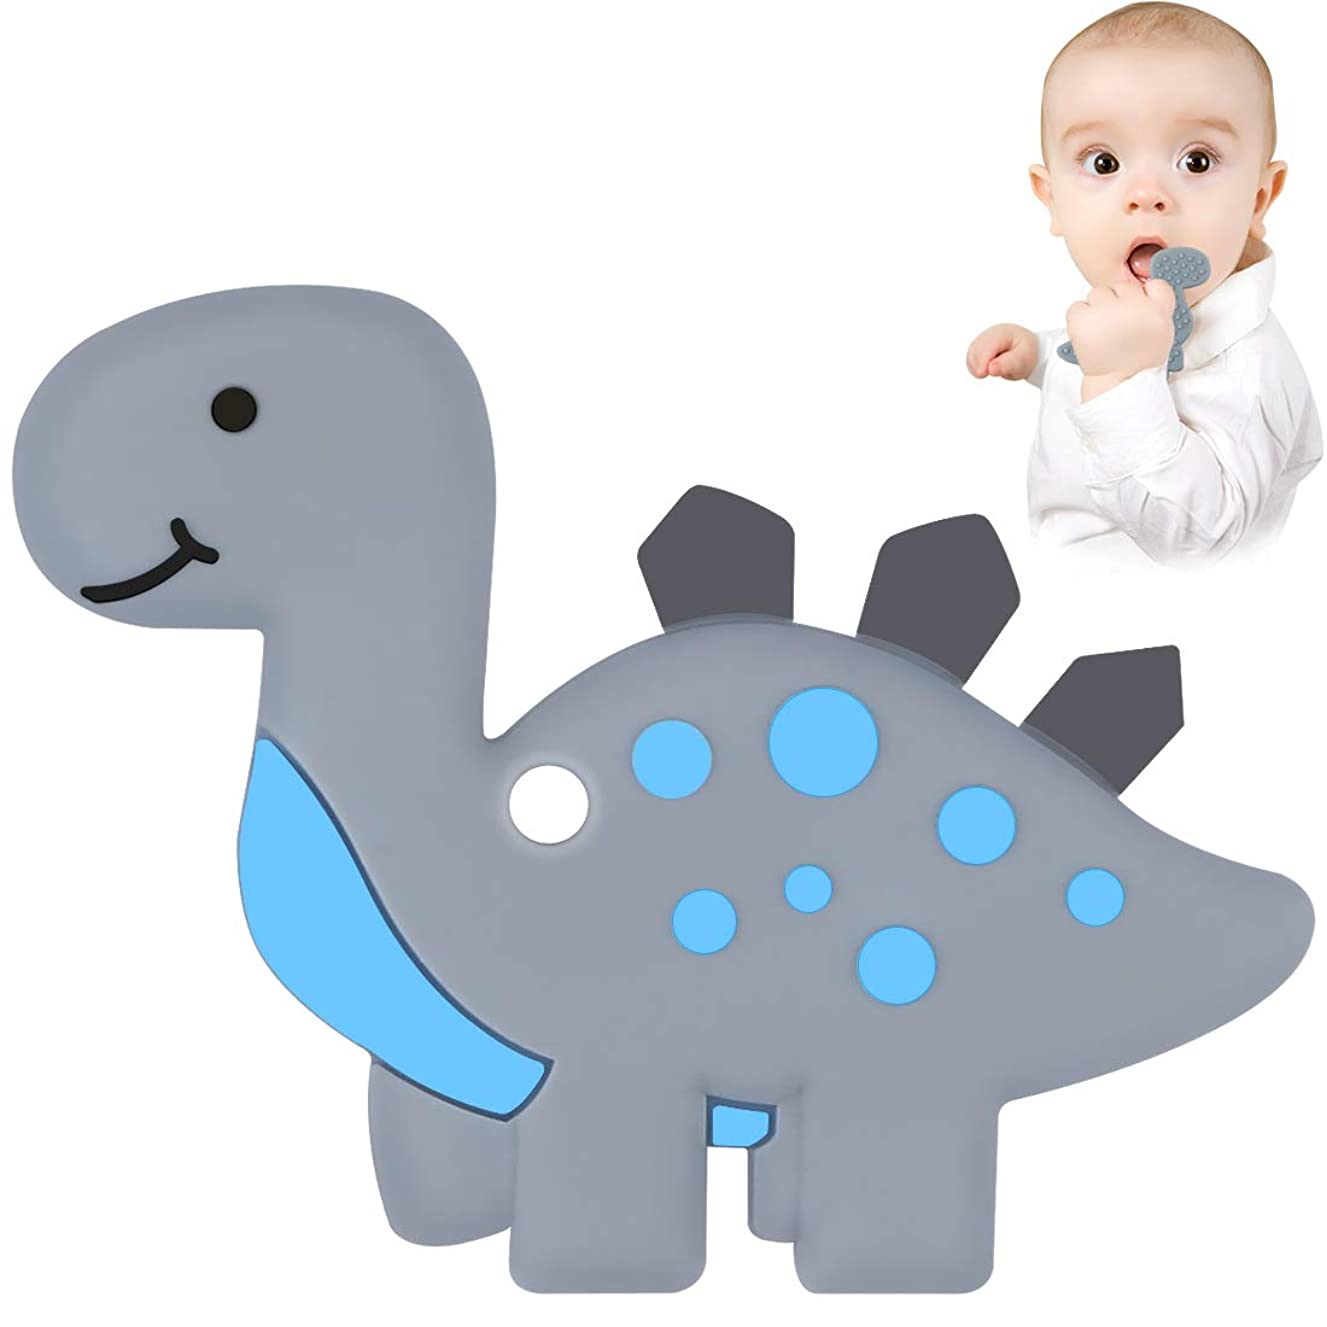 Dinosaur Baby Teether - Bestwin BPA Free Silicone Teething Toy for Baby Shower 0 3 6 12 Months 1 Year Old Christmas Gifts (Grey)